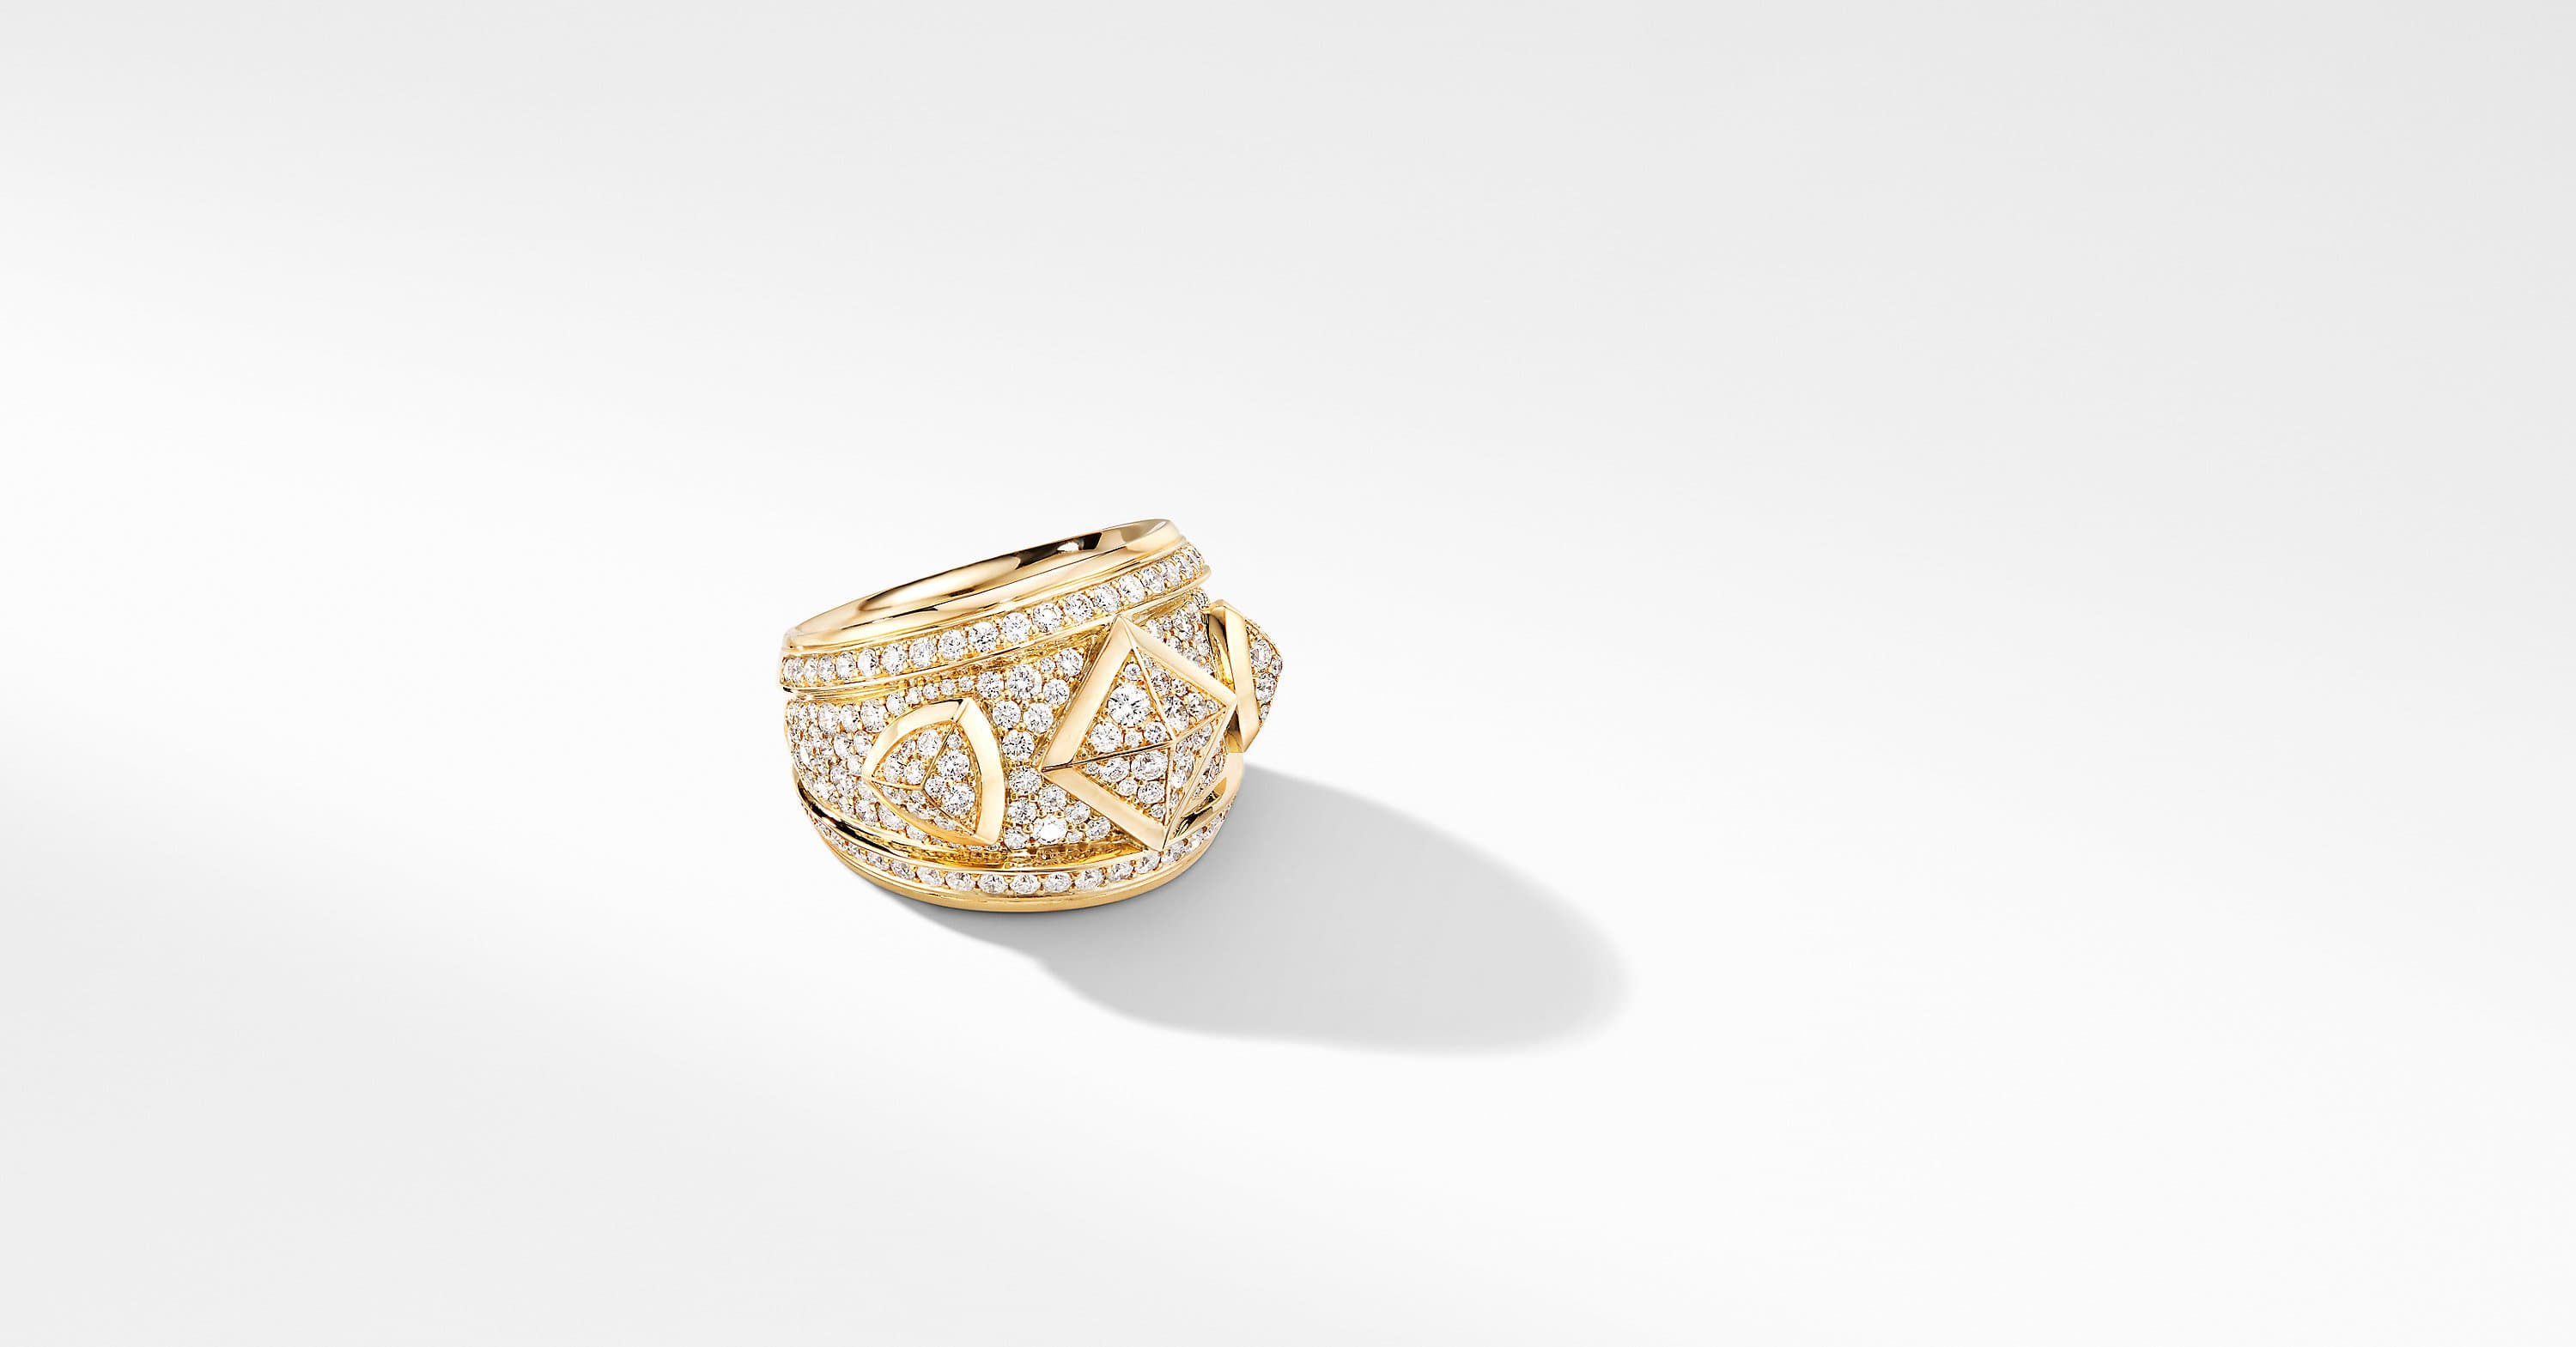 Renaissance Ring in 18K Yellow Gold with Full Pavé